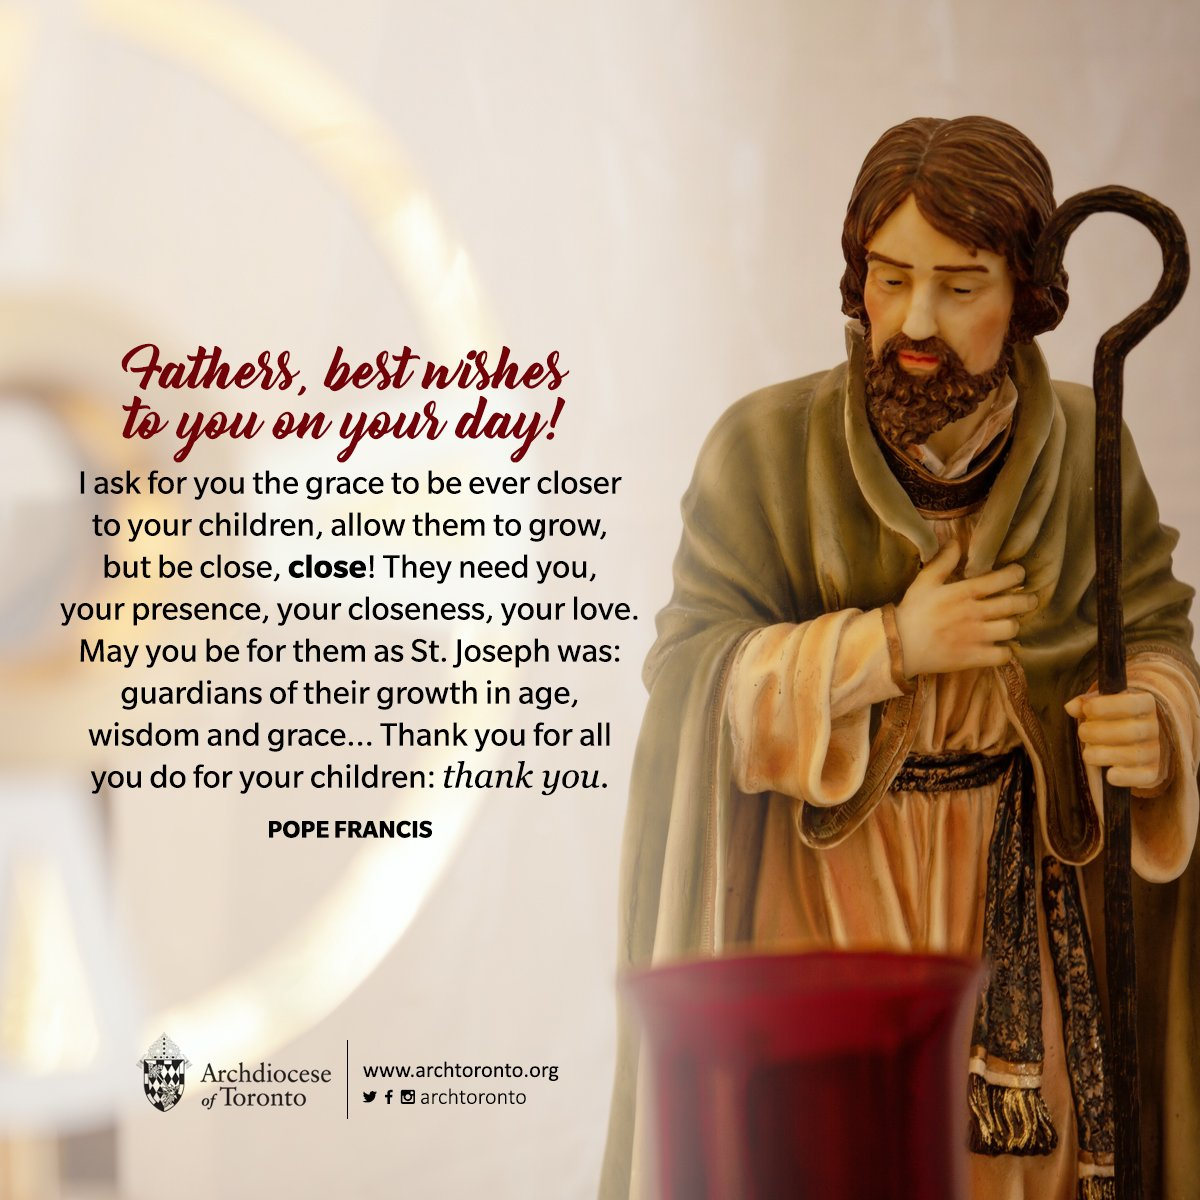 Fathers, best wishes to you on your day! May St. Joseph bless you and accompany you. #fathersday